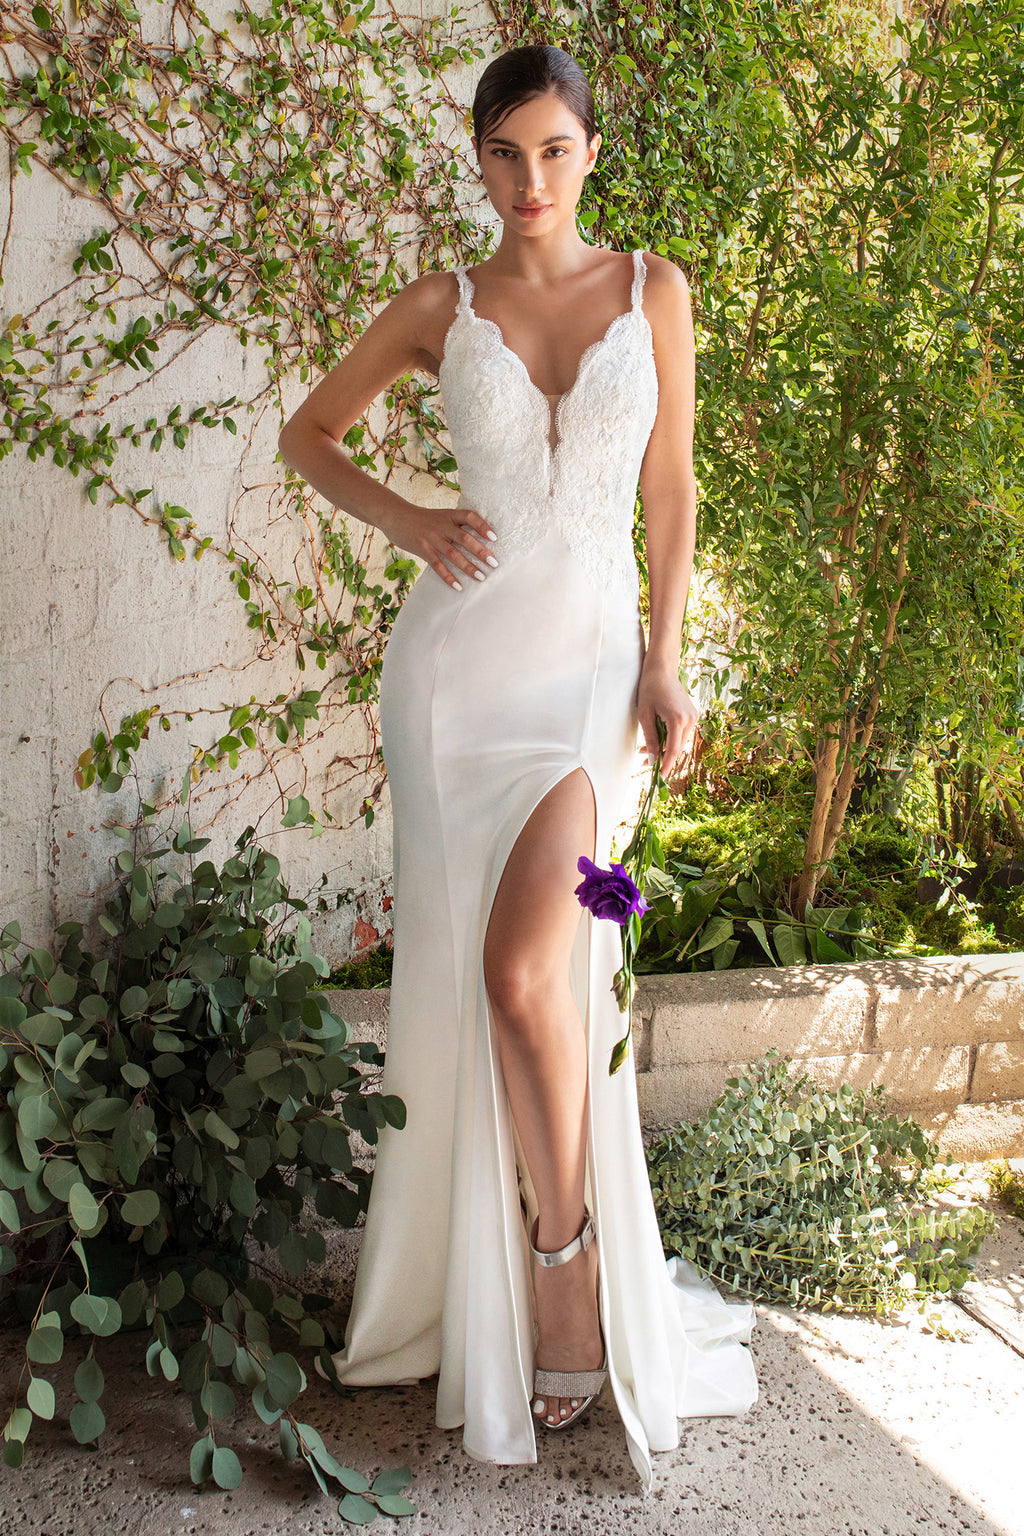 Macy, Fitted lace bodice gown with deep plunging neckline, open back and leg slit - KC Haute Couture Wedding Dress